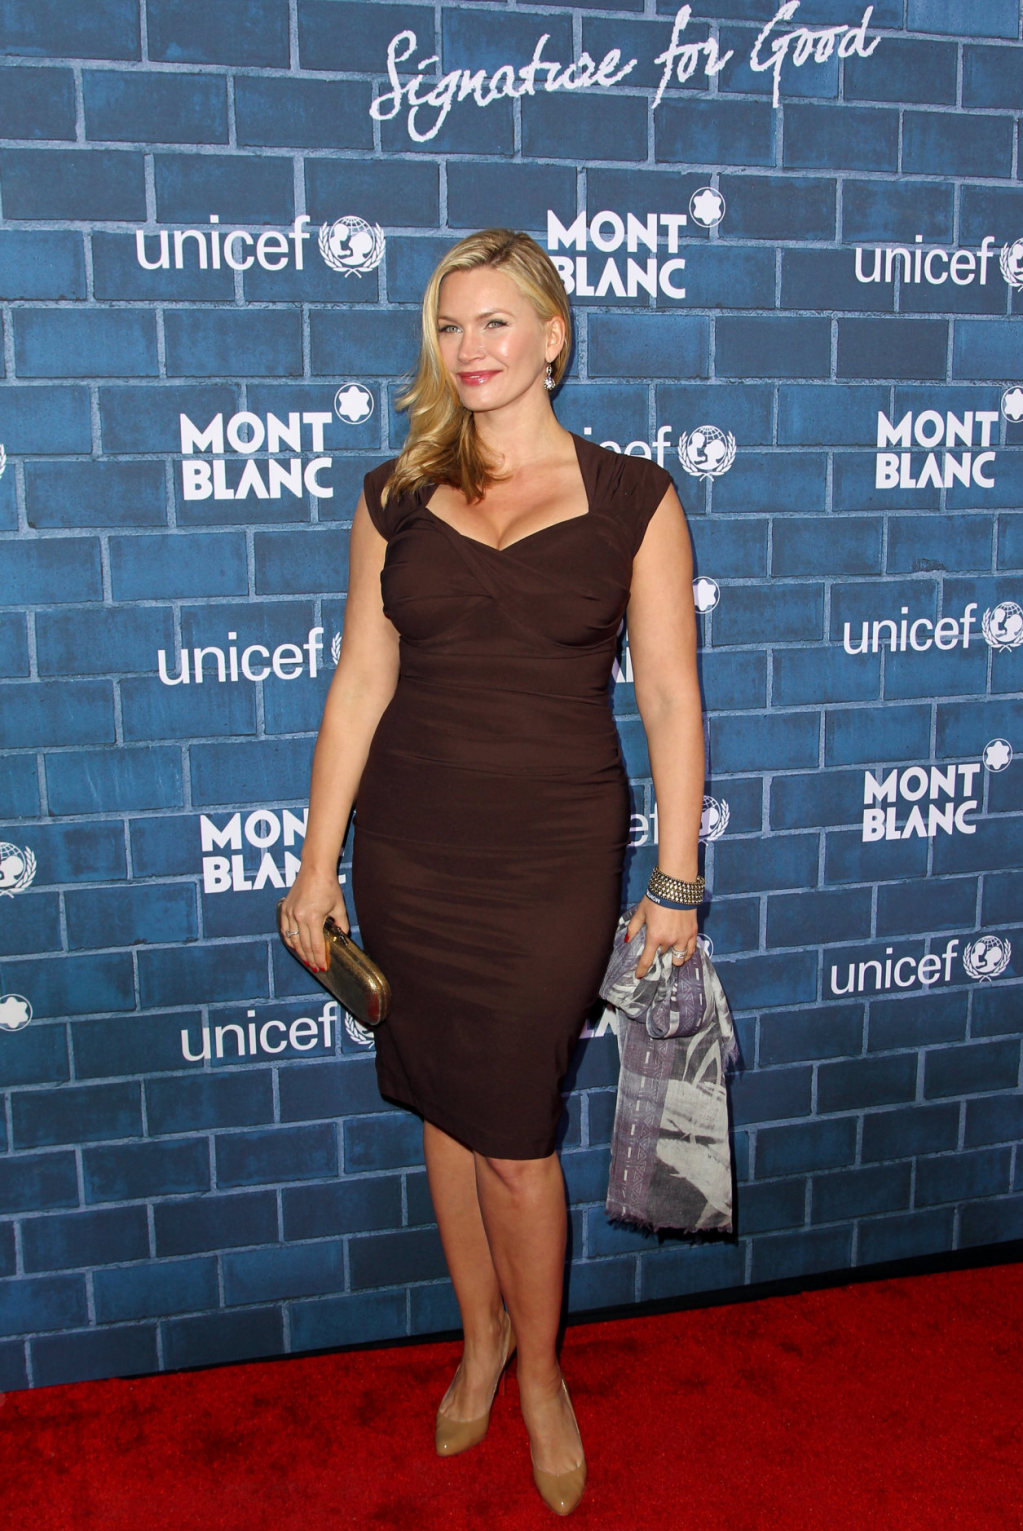 Natasha Henstridge Montblanc Unicef Pre-Oscar Charity Brunch in Los Angeles